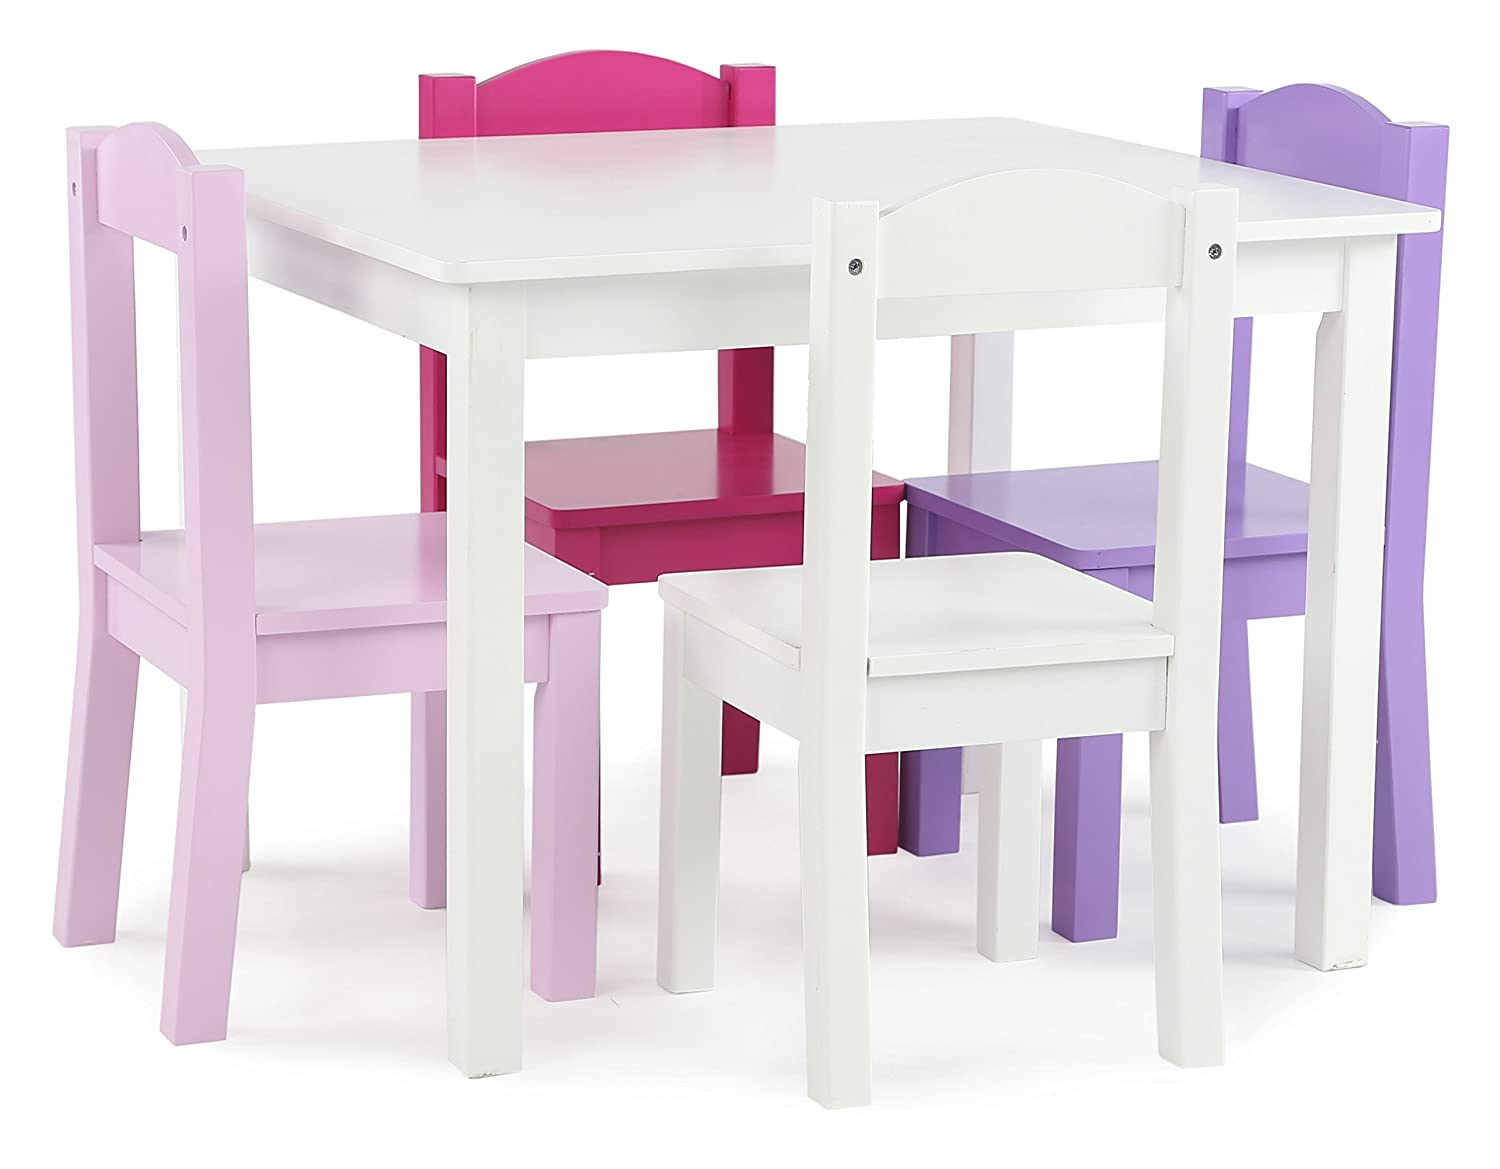 Tot Tutors TC727 Friends Collection Kids Wood Table & 4 Chair Set, White/Pink & Purple